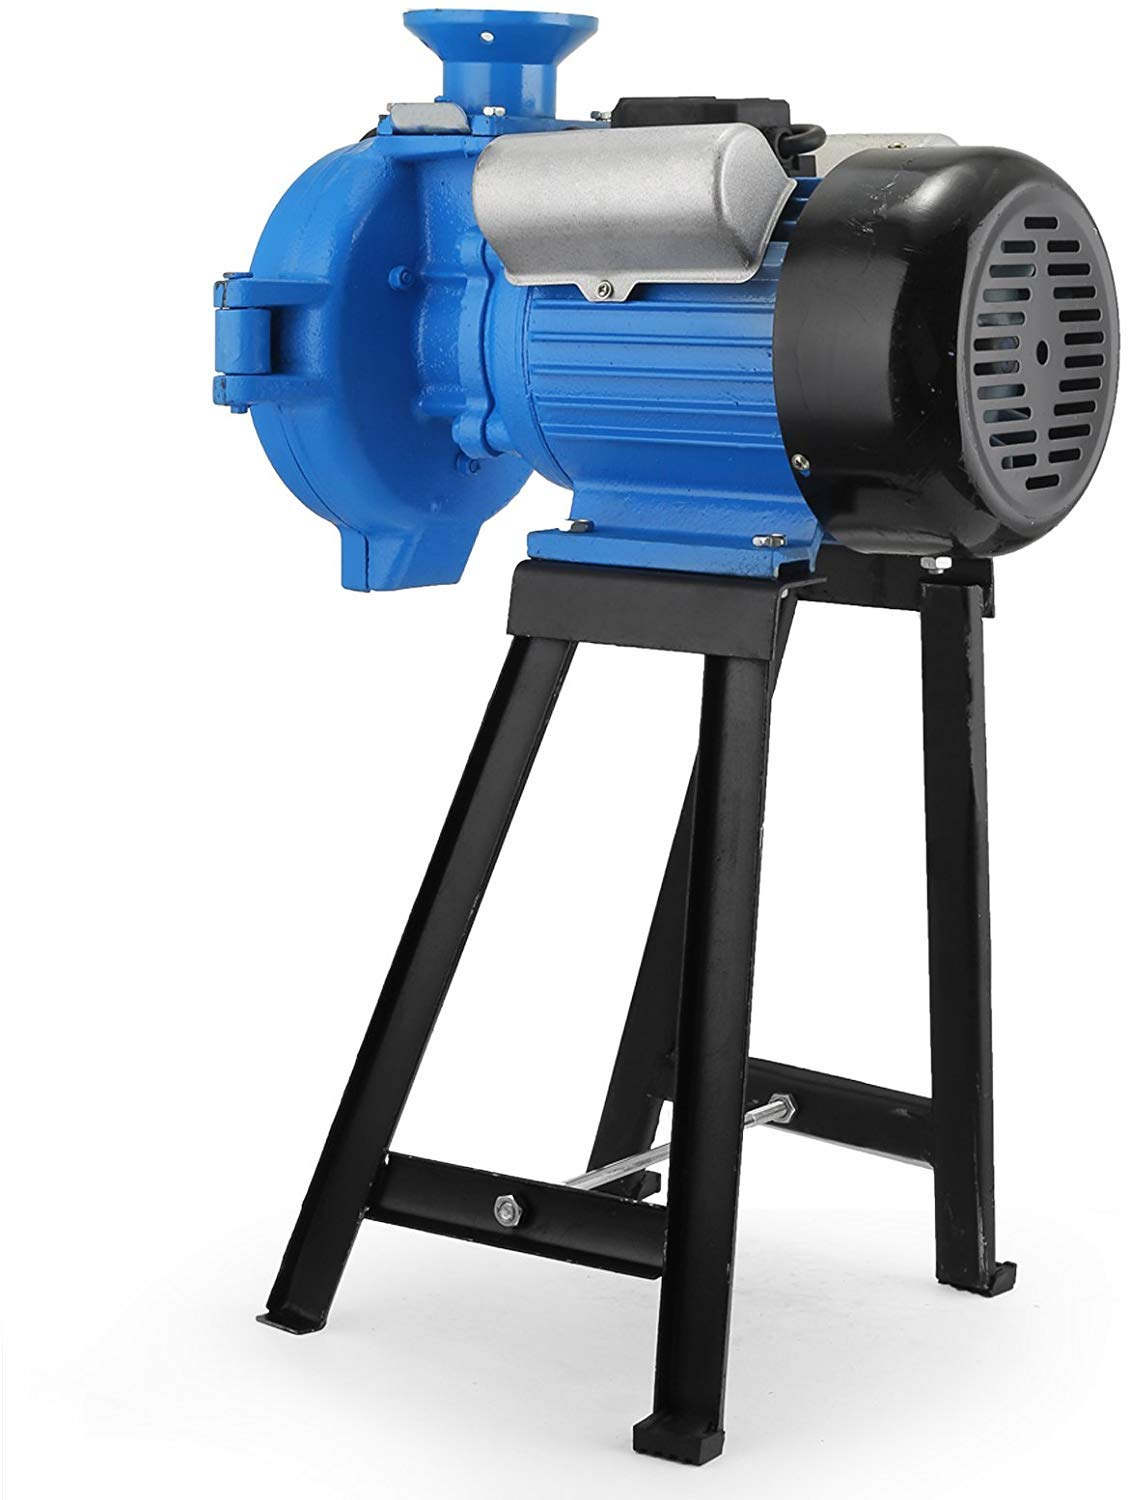 Happybuy Feed Mill Electric Funnel Cereals Grinder Funnel For Industrial Use Feed Mill Technology for Corn Grain Rice Wheat Coffee Beans 220V